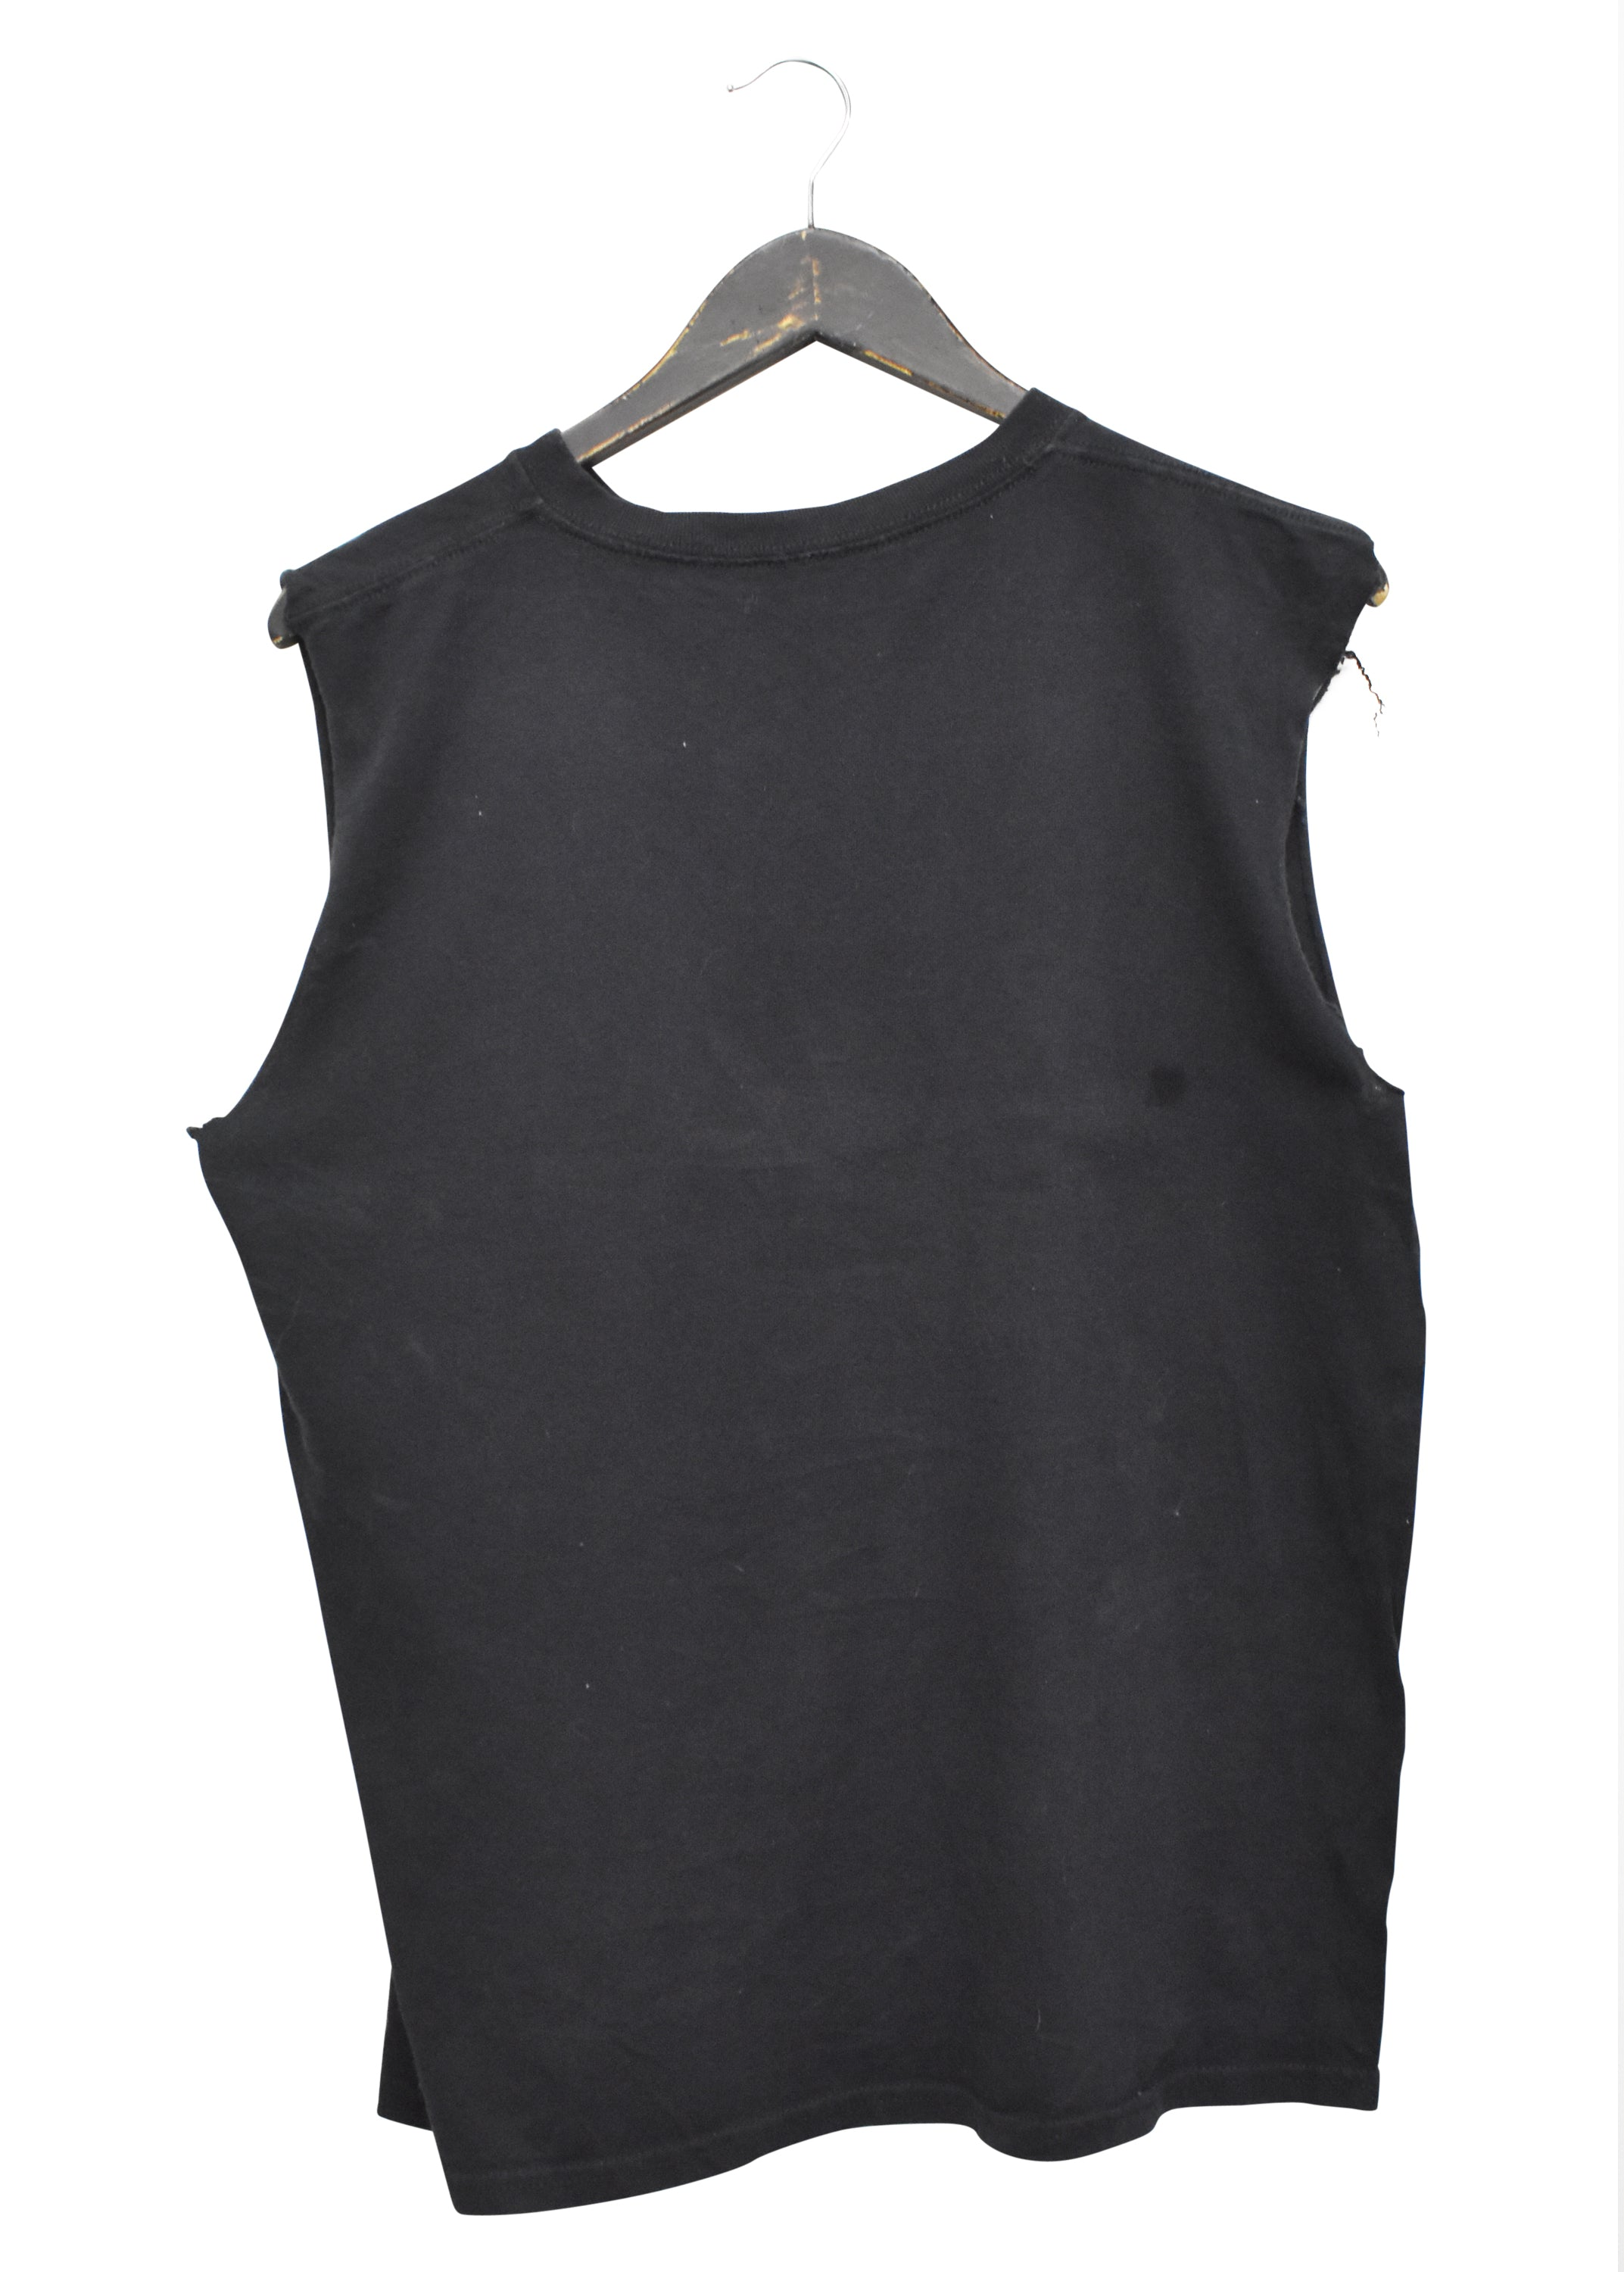 2000 MARILYN MANSON 'HOLY WOOD (IN THE SHADOW OF THE VALLEY OF DEATH)' VINTAGE TANK